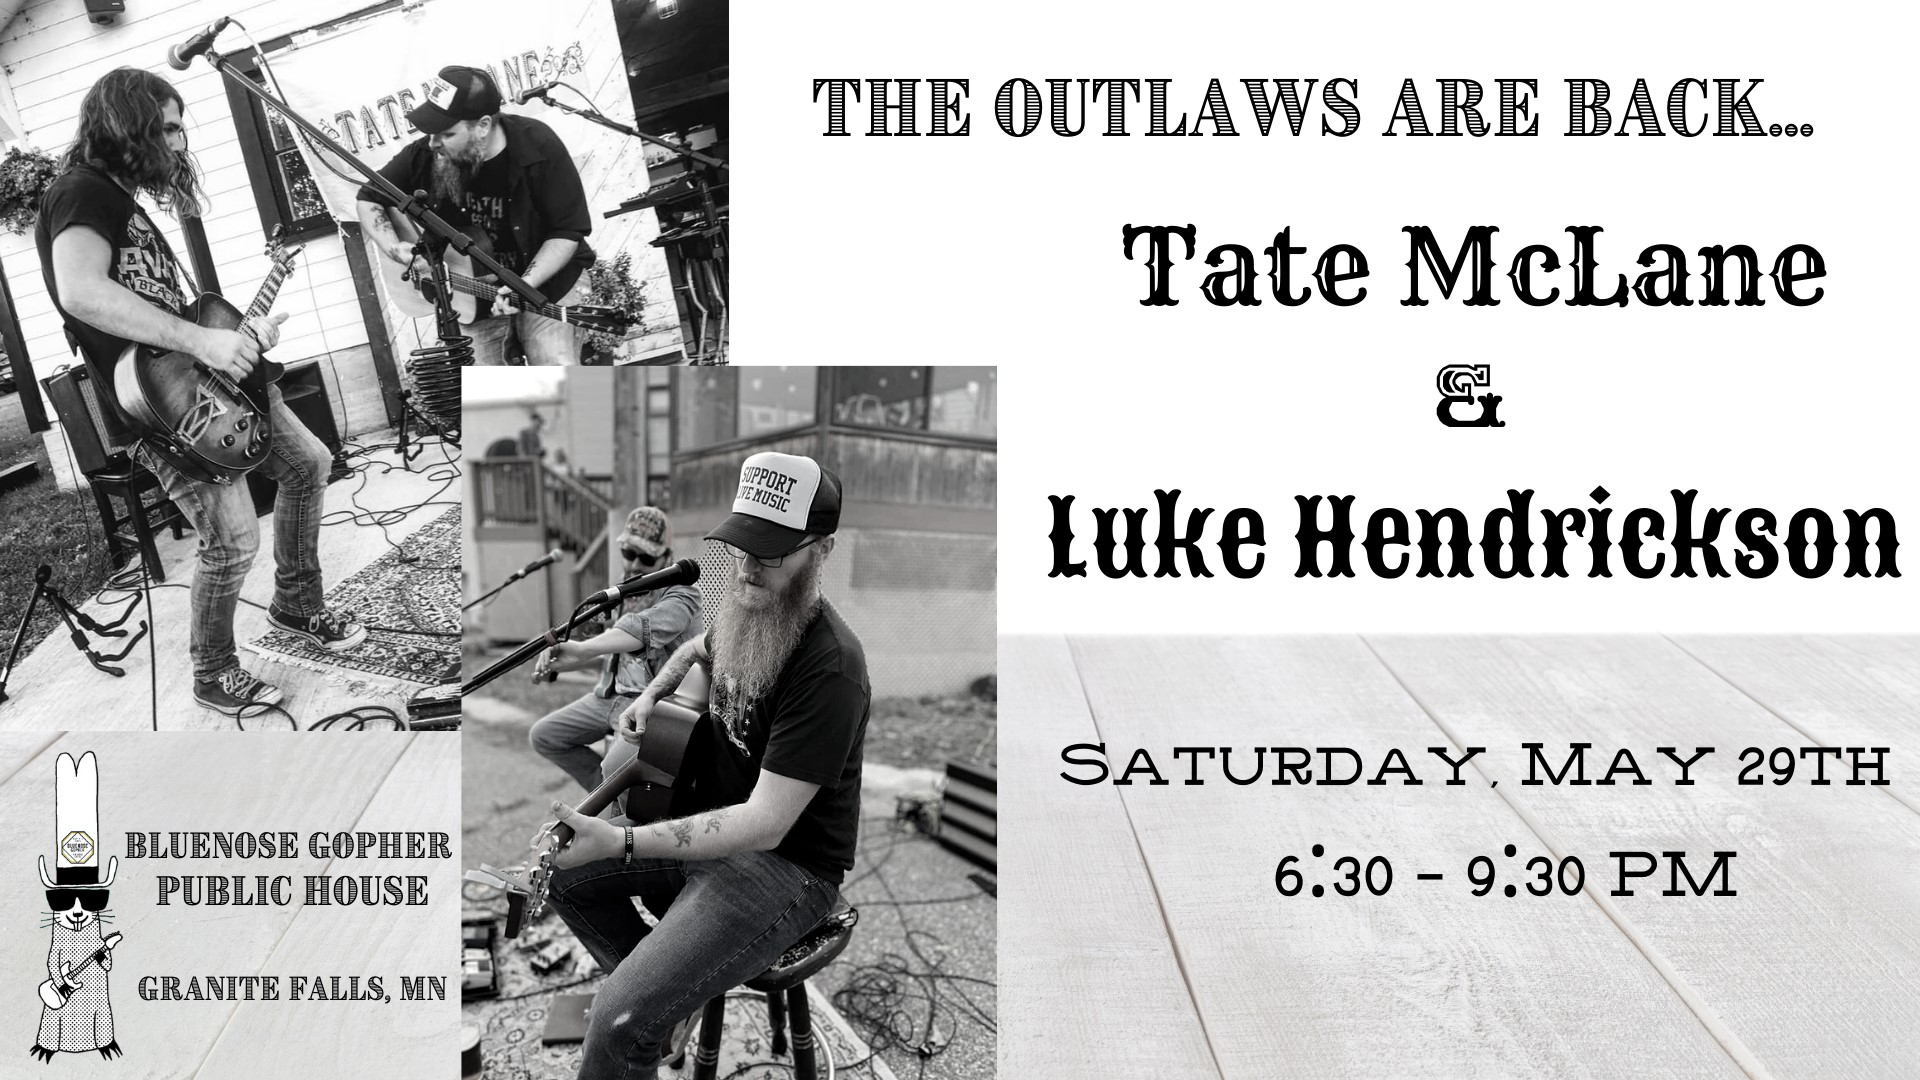 The outlwas are back...Tate McLane & Luke Hendrickson. Saturday, May 29th, 6:30-9:30 pm.